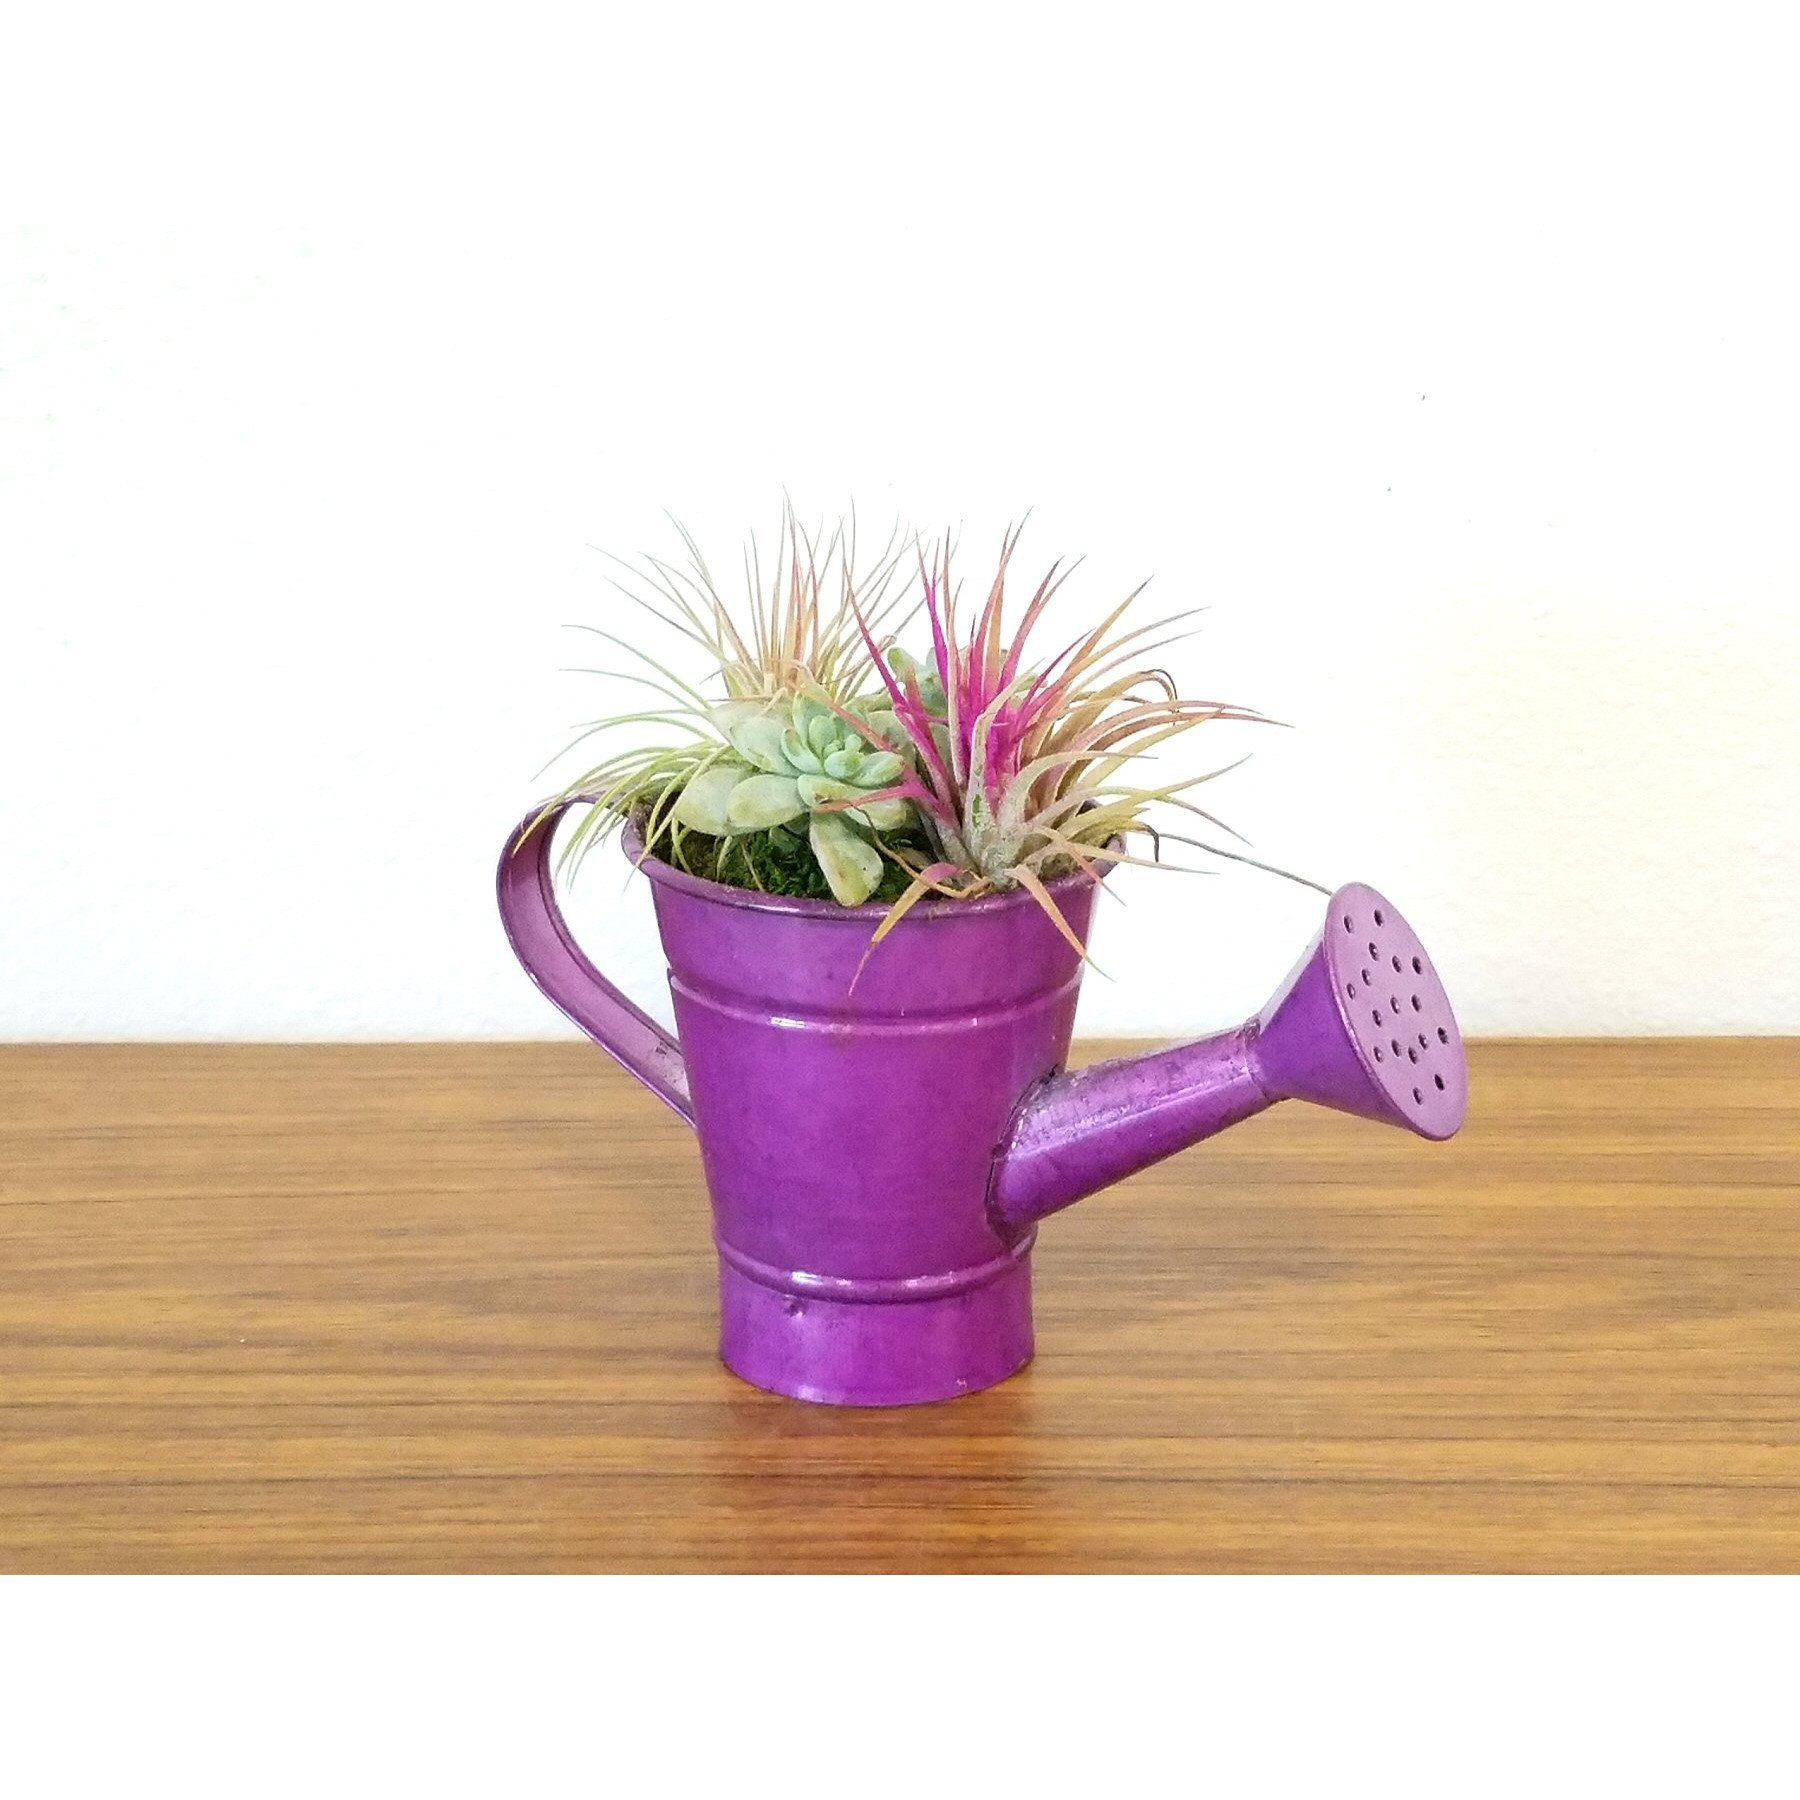 Watering Can Petite Air Plants Succulents Eve S Garden Gifts